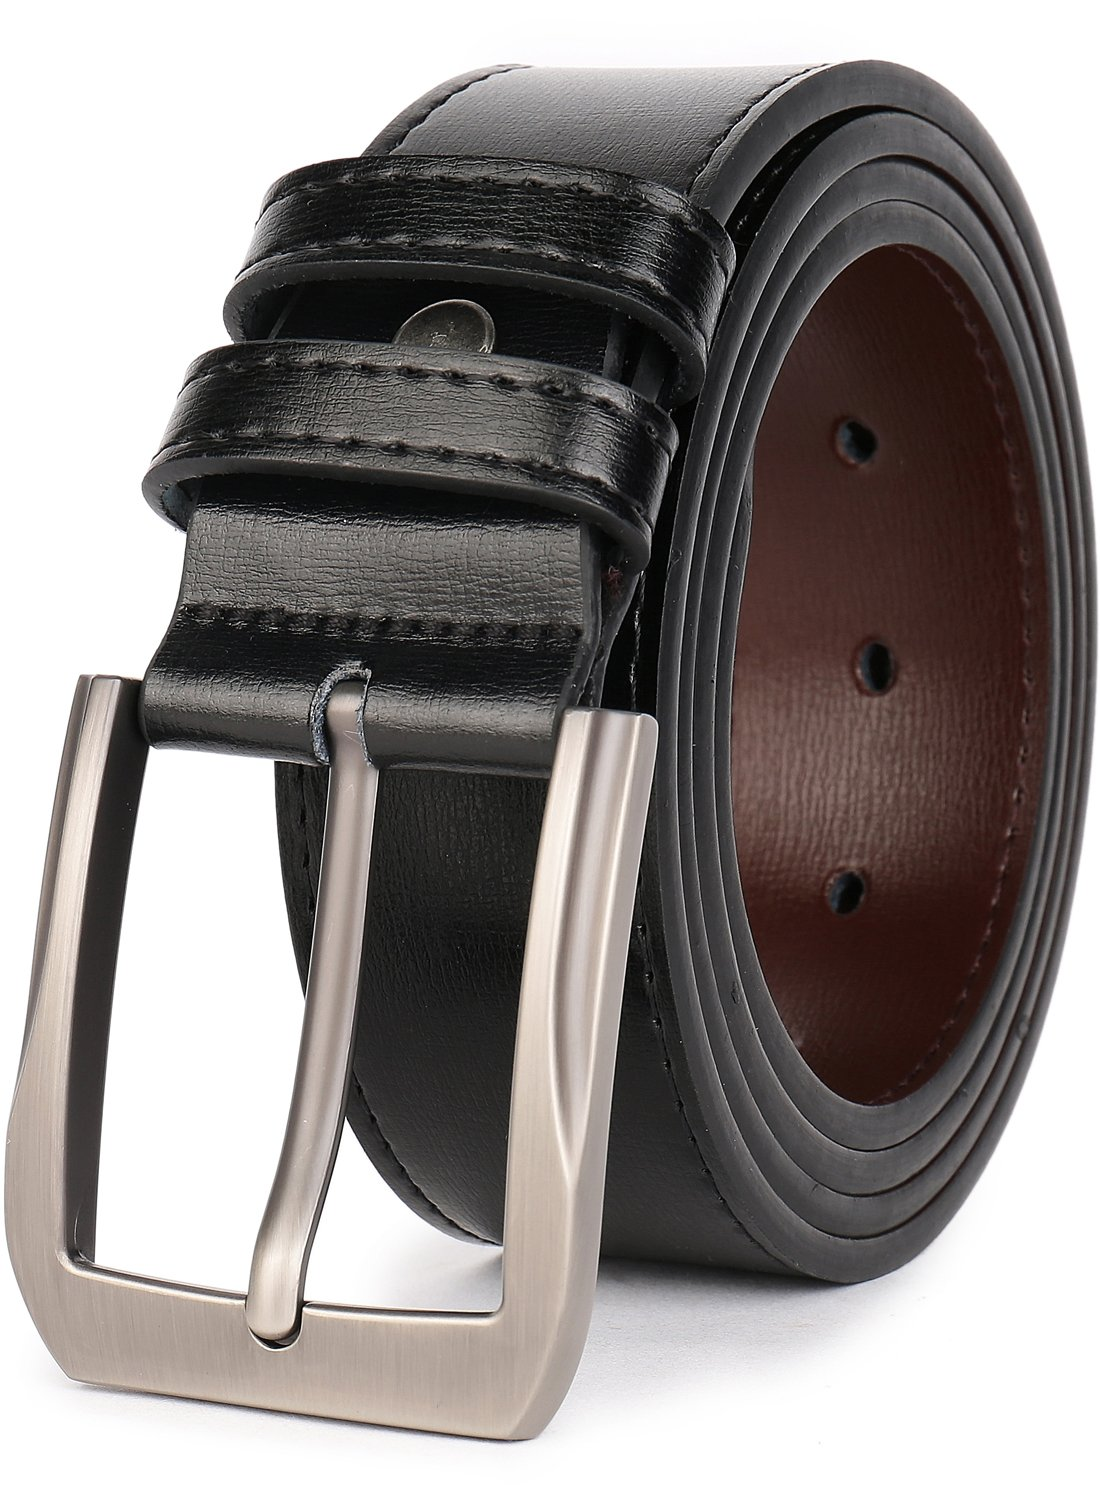 QUEYUB Men's Dress Belts Genuine Leather 1.5'' Wide Alloy Prong Buckle Gift Box (34-36, Black)